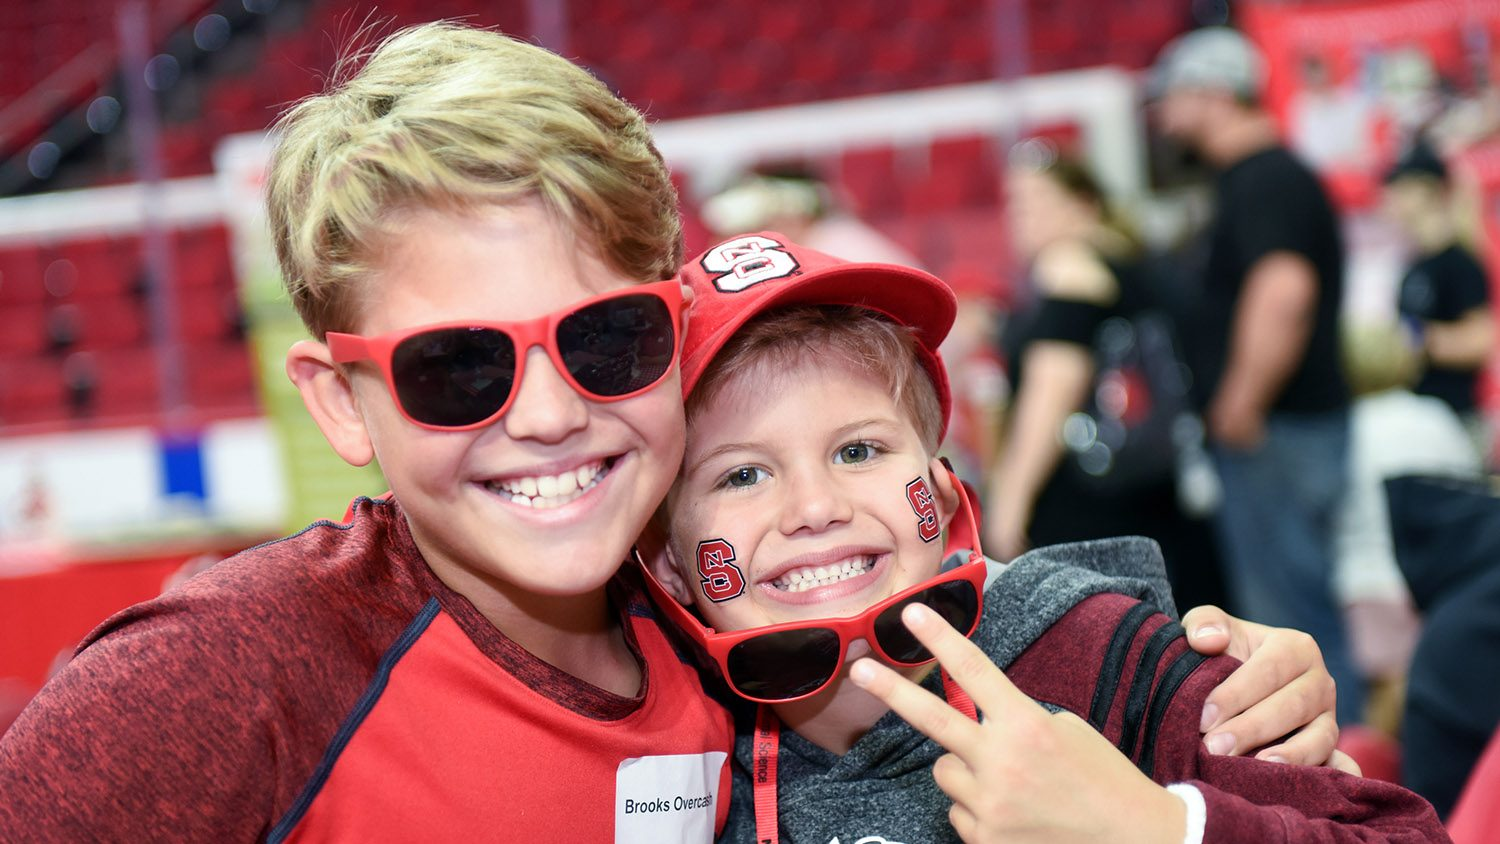 Two young boys, one in red shirt with red sun glasses, the other with a red NC State hat, red sunglasses and State tattoos on cheeks.